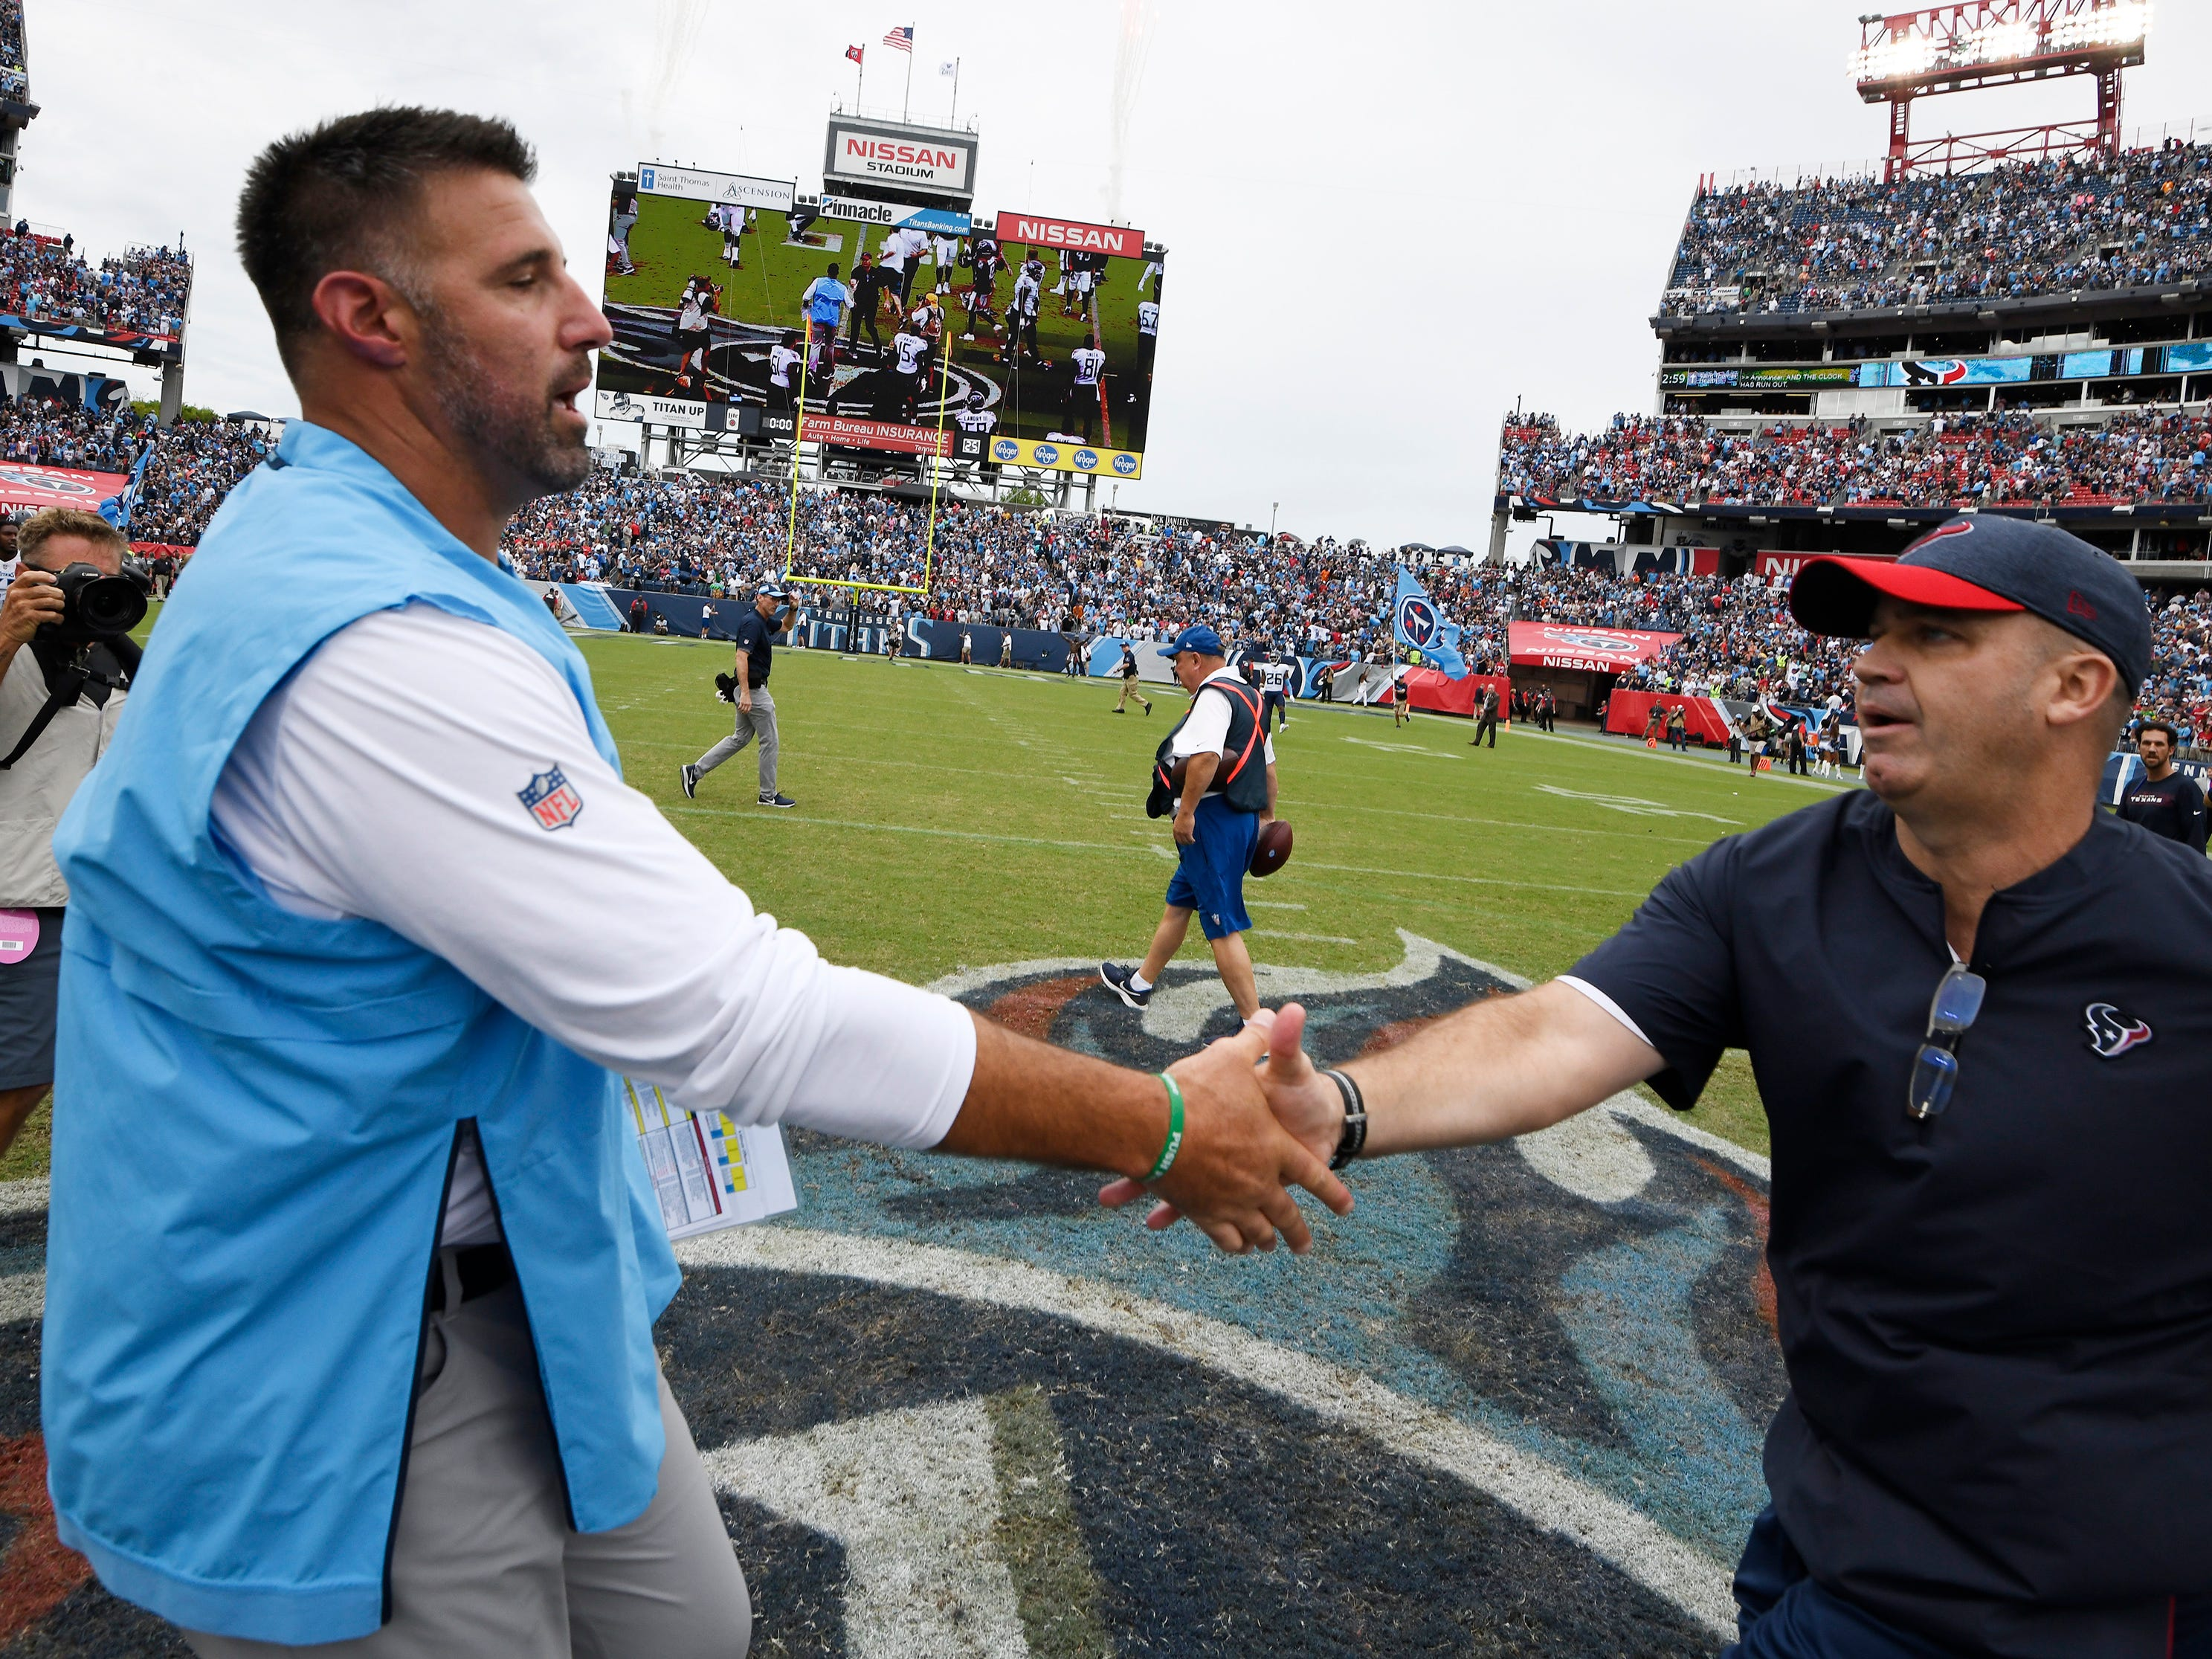 Titans head coach Mike Vrabel shakes hands with Texans head coach Bill O'Brien after the Titans' 20-17 win at Nissan Stadium Sunday, Sept. 16, 2018, in Nashville, Tenn.